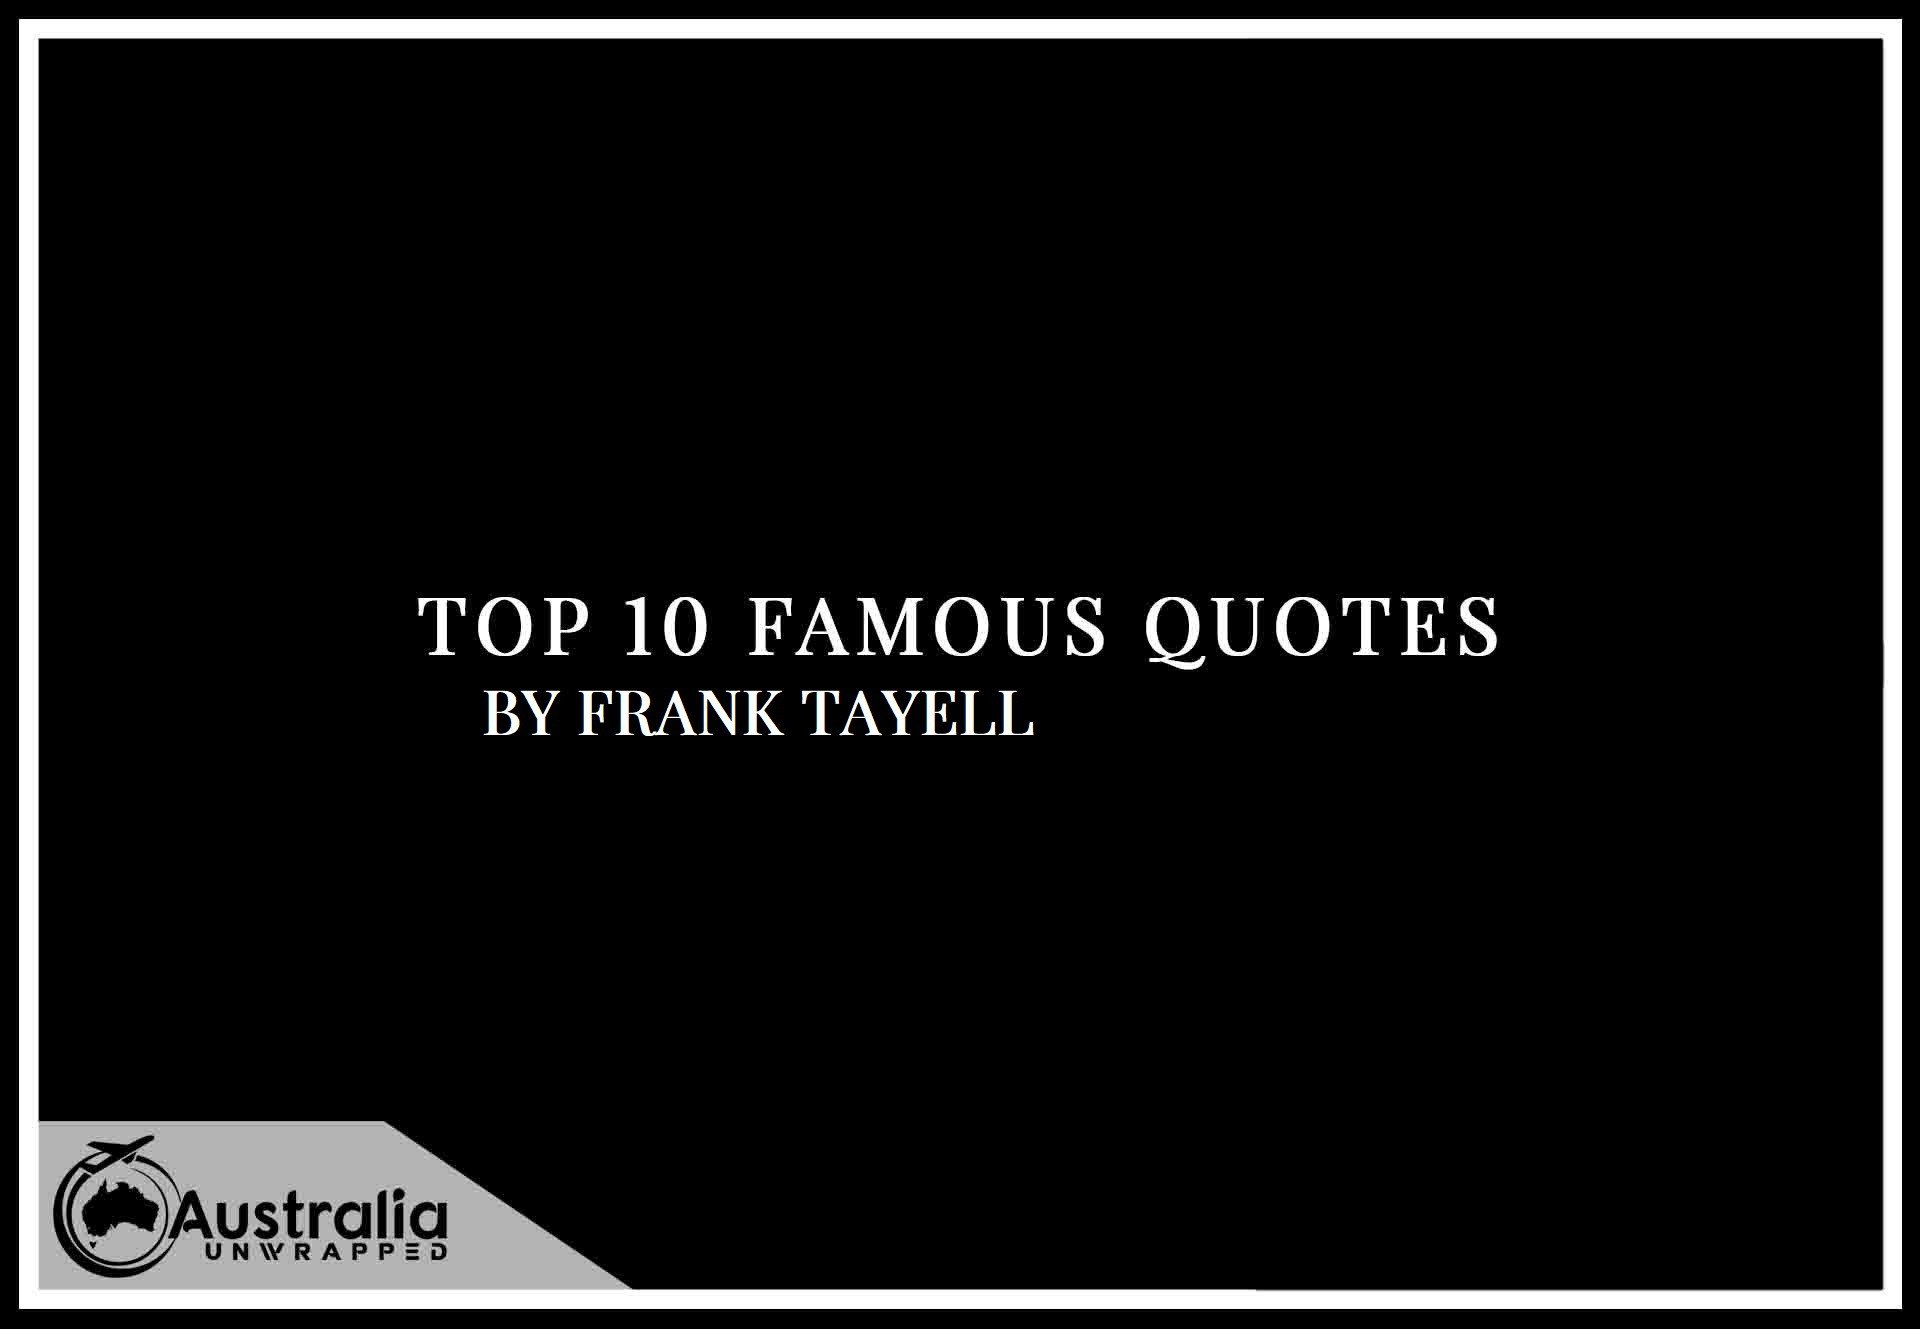 Top 10 Famous Quotes by Author Frank Tayell